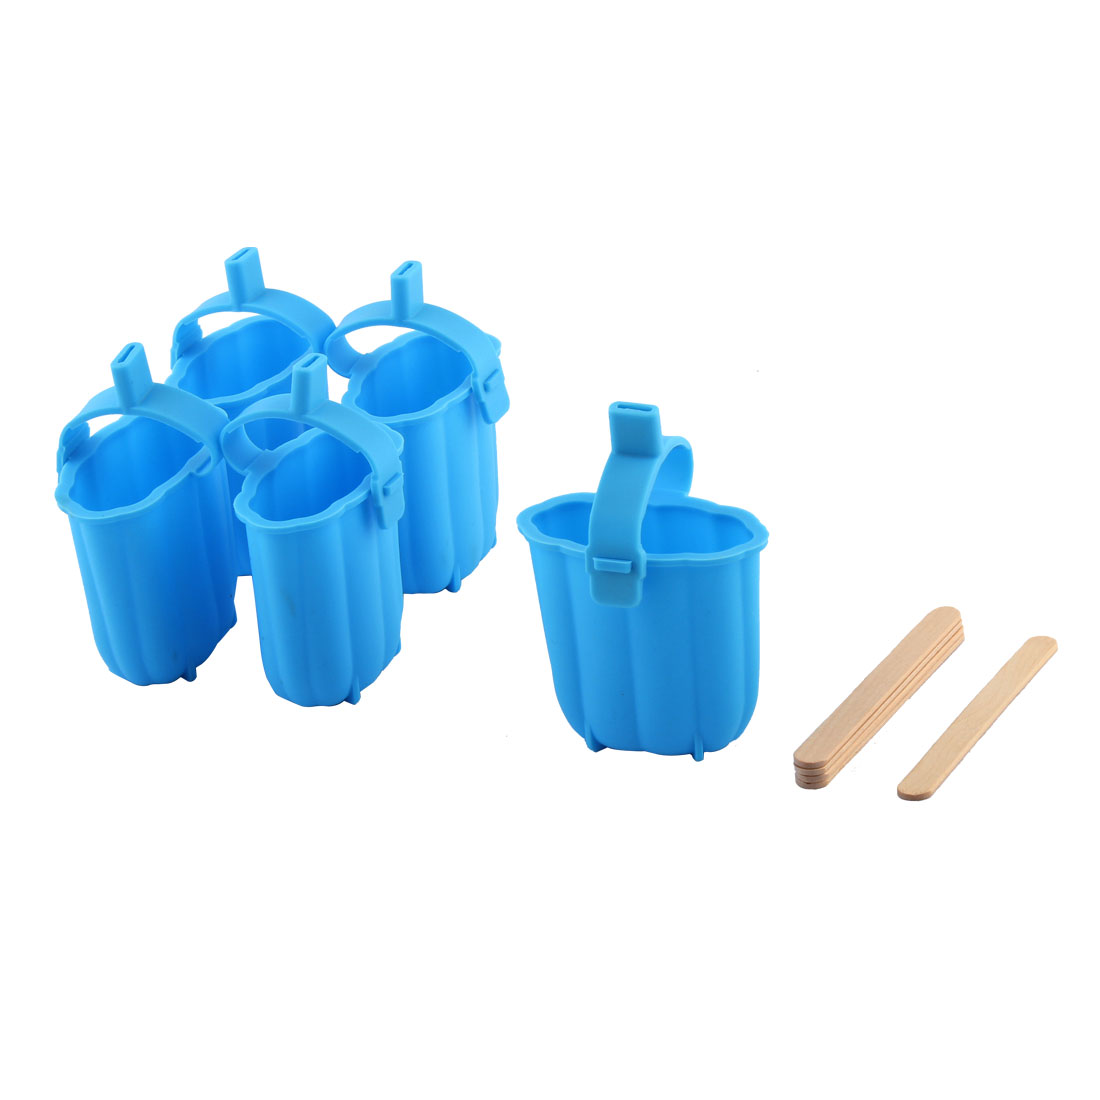 Household Kitchenware Silicone Candy Ice Lolly DIY Frozen Mould Blue 5pcs